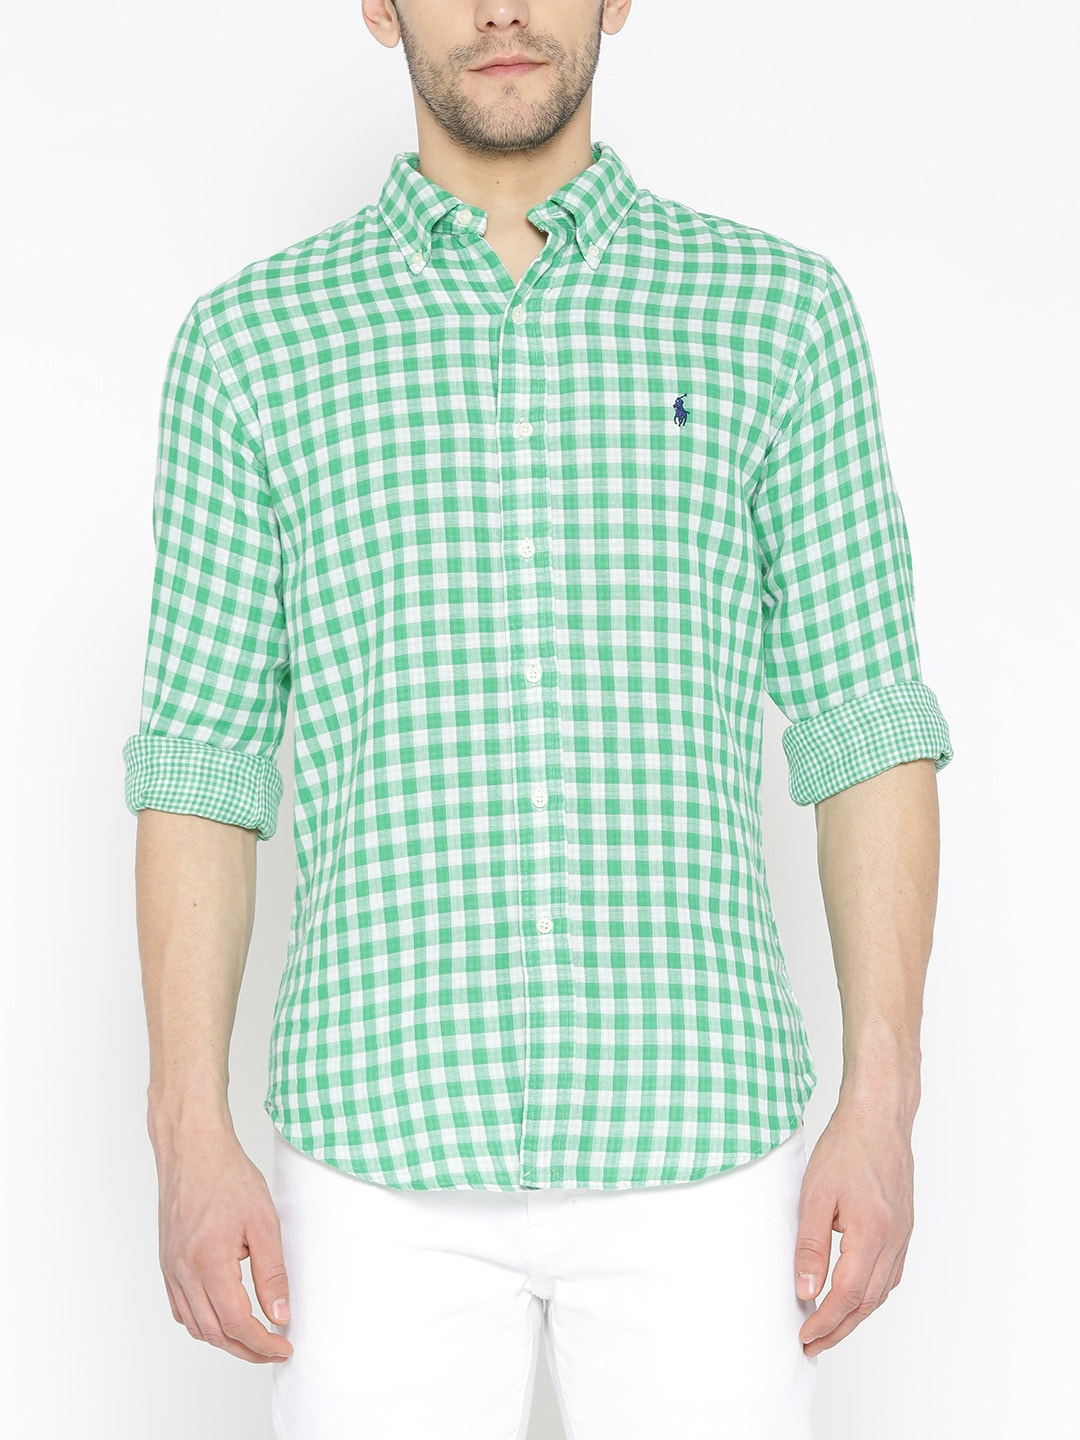 aa656ae2b Roadster Polo Shirt - Buy Roadster Polo Shirt online in India